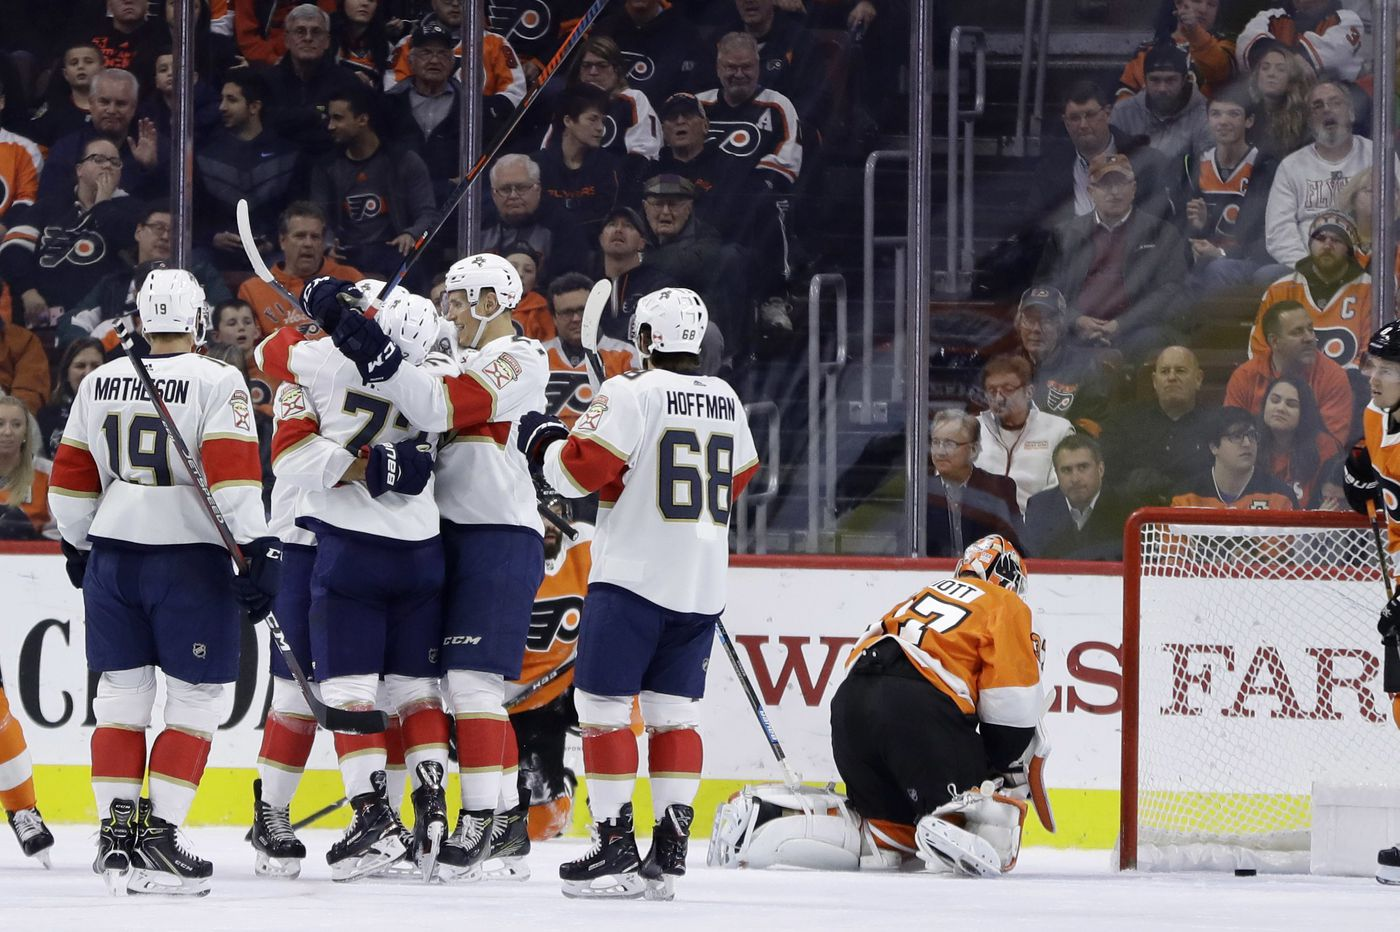 Flyers lose to Panthers, ending six-game point streak